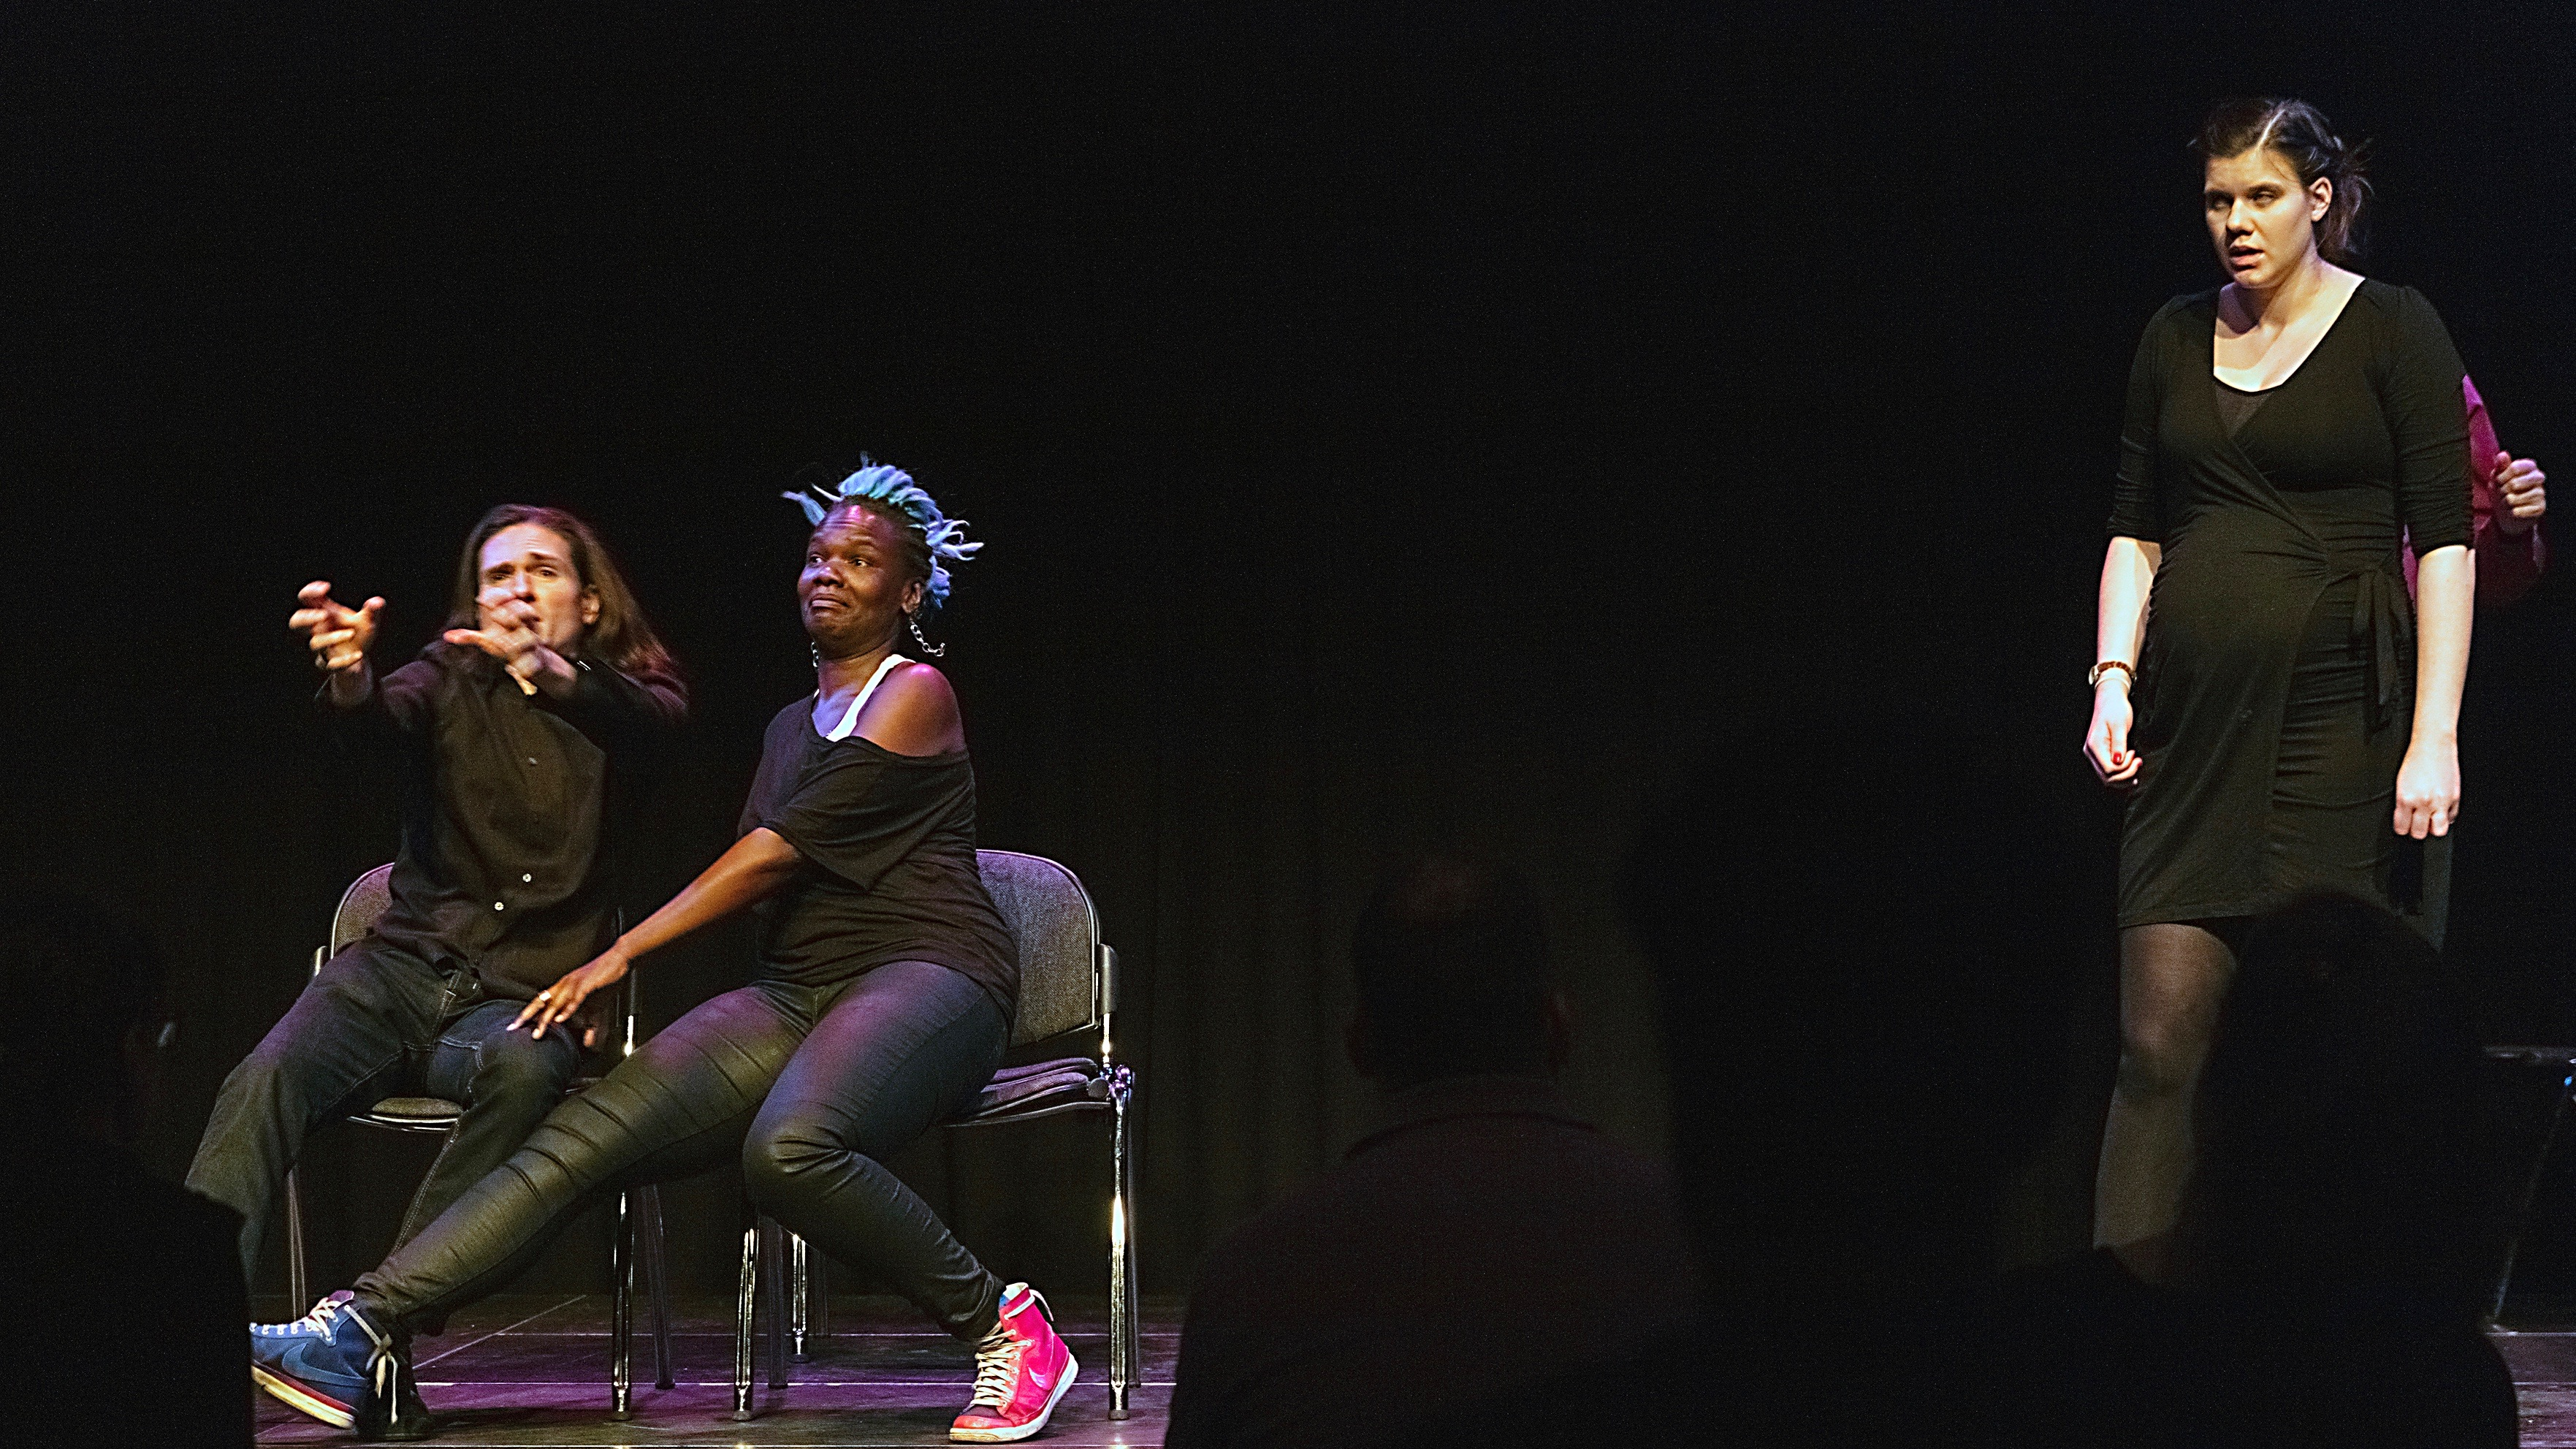 A performance from the Netherlands-based comedy improv group Easy Laughs.